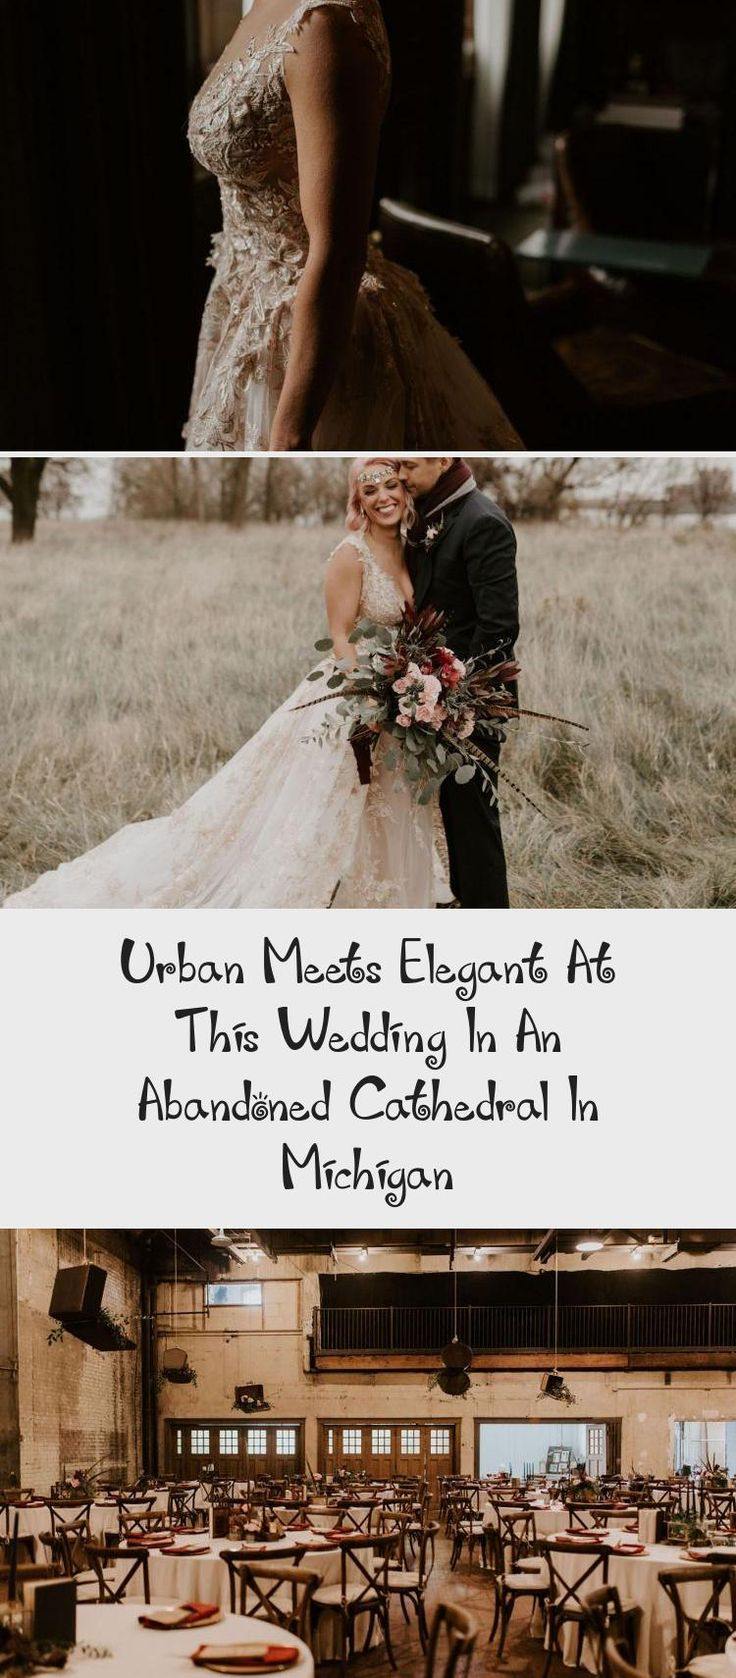 Urban Meets Elegant at this Wedding in an Abandoned Cathedral in Michigan - Green Wedding Shoes #BridesmaidDressesPurple #DavidsBridalBridesmaidDresses #CasualBridesmaidDresses #YellowBridesmaidDresses #PlumBridesmaidDresses